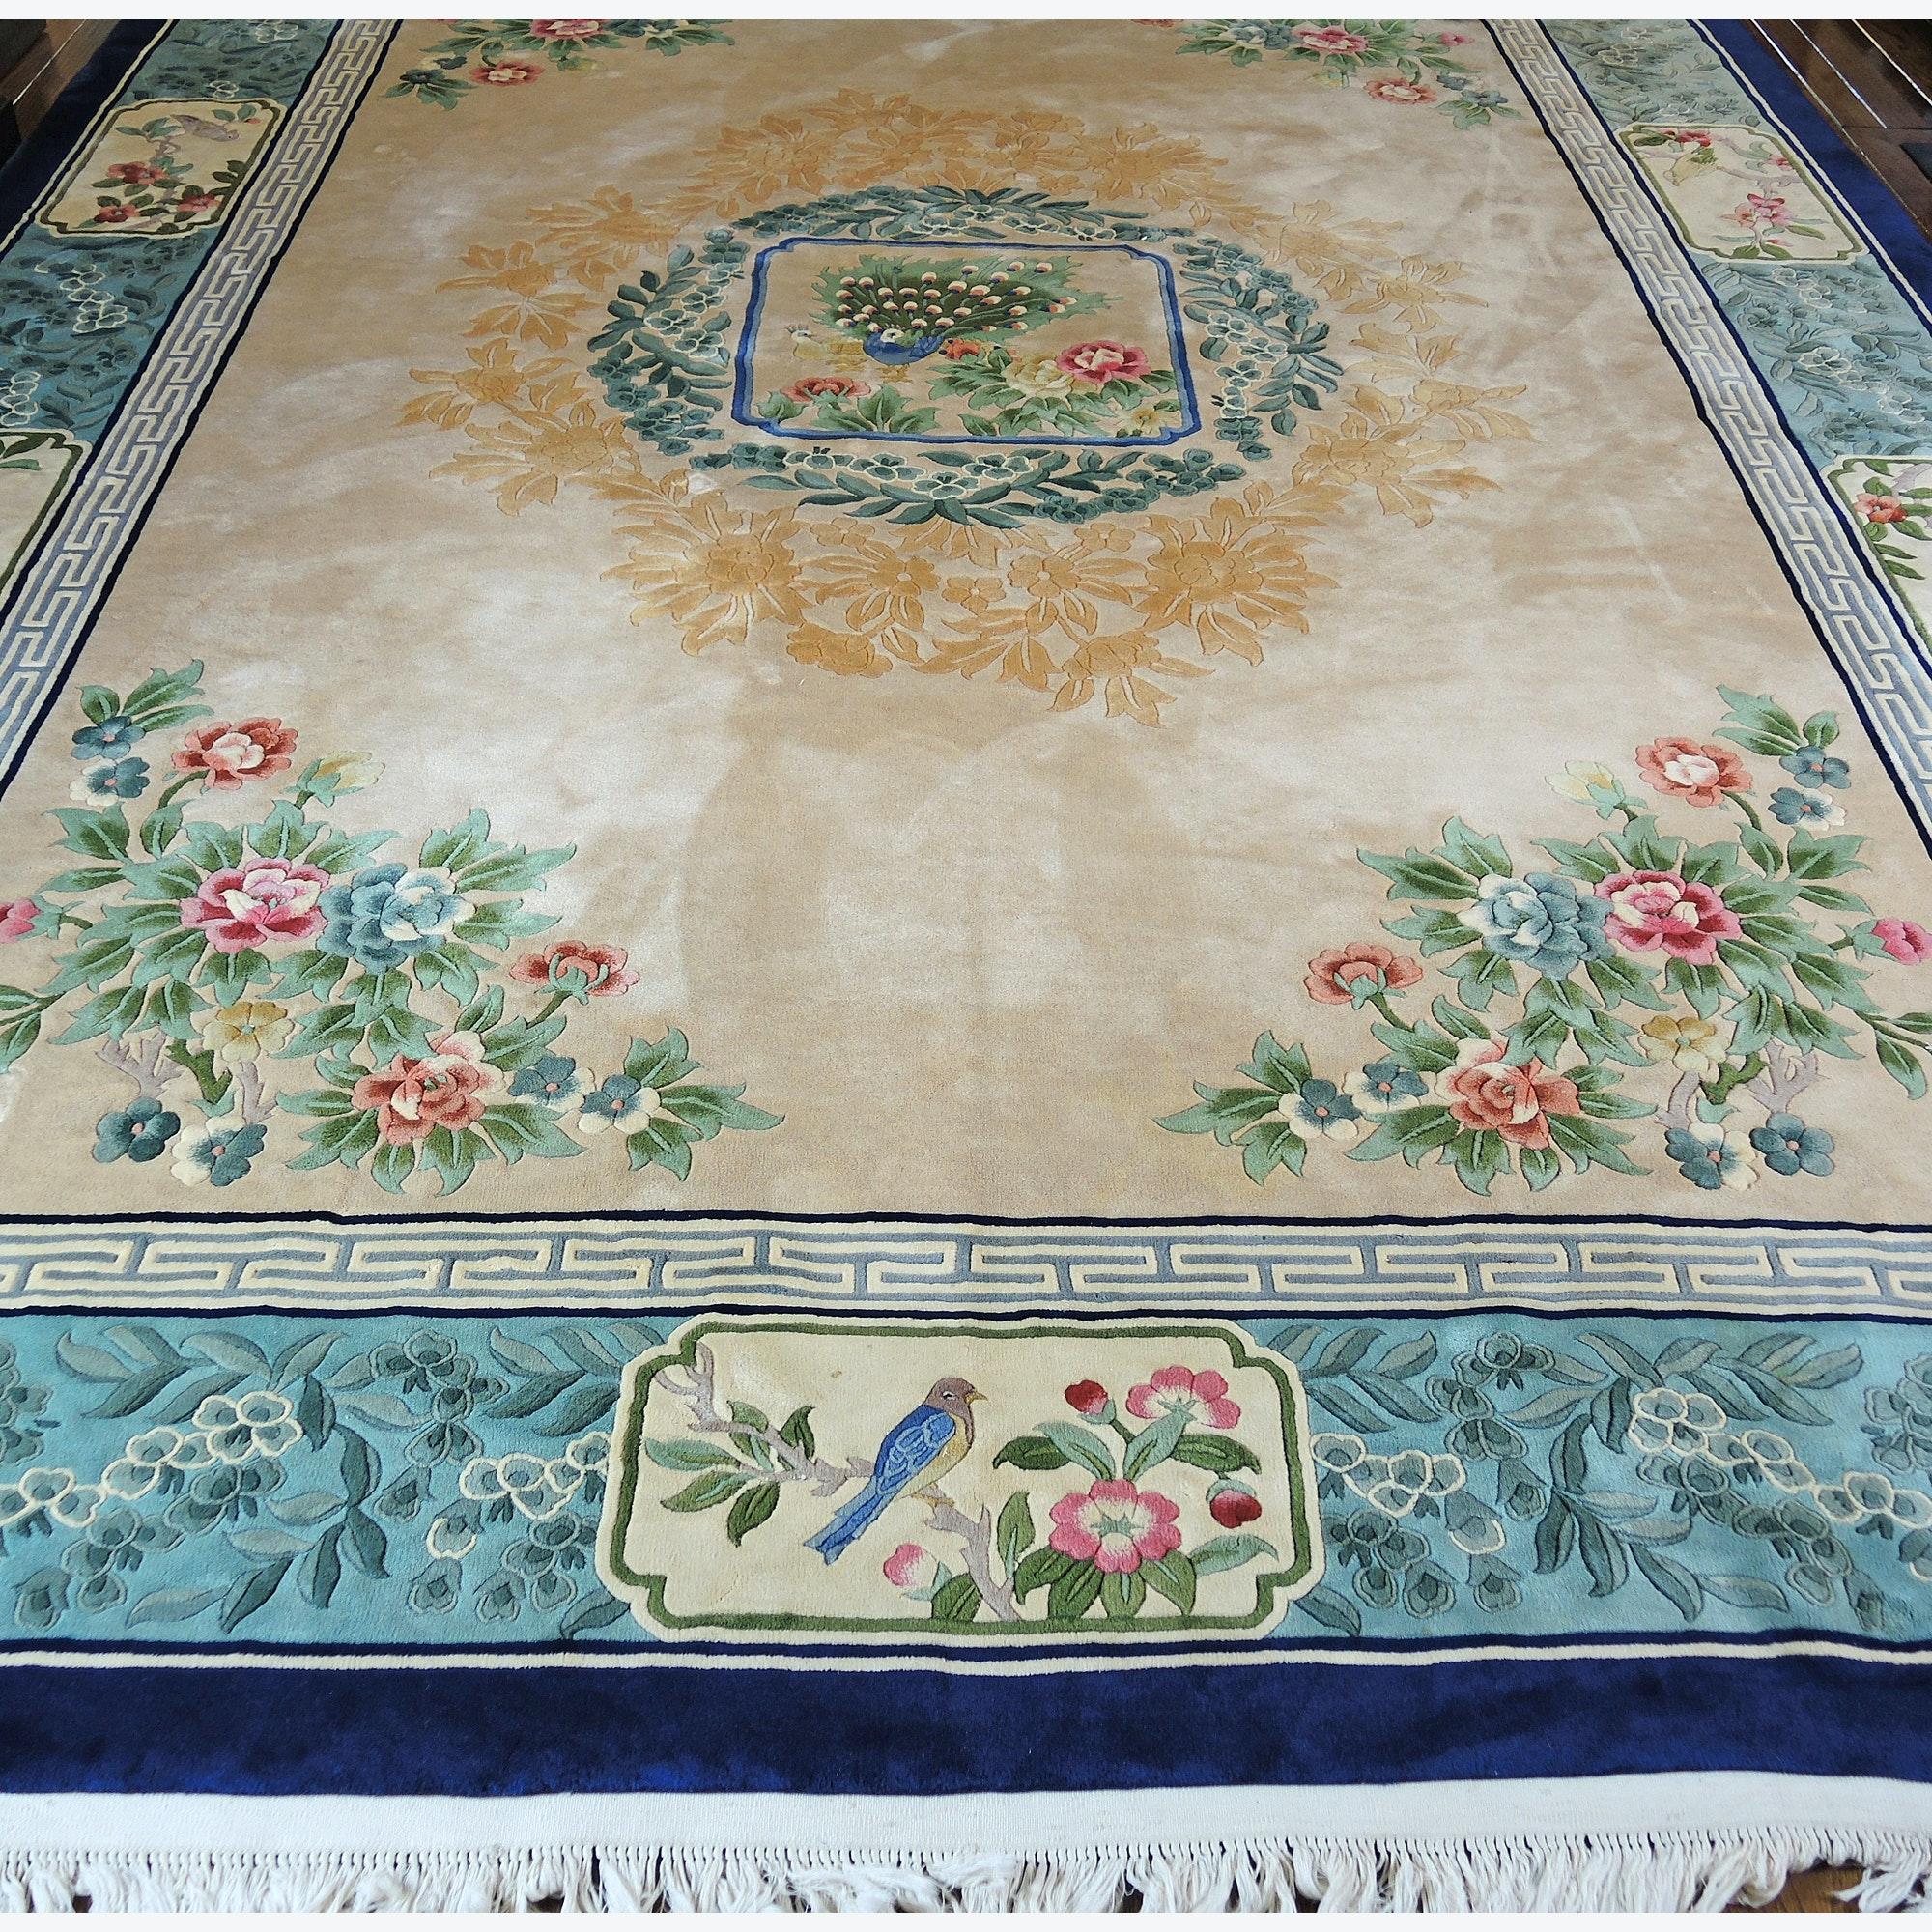 Finely Hand-Knotted Chinese Carved Pictorial Area Rug with Peacock Design